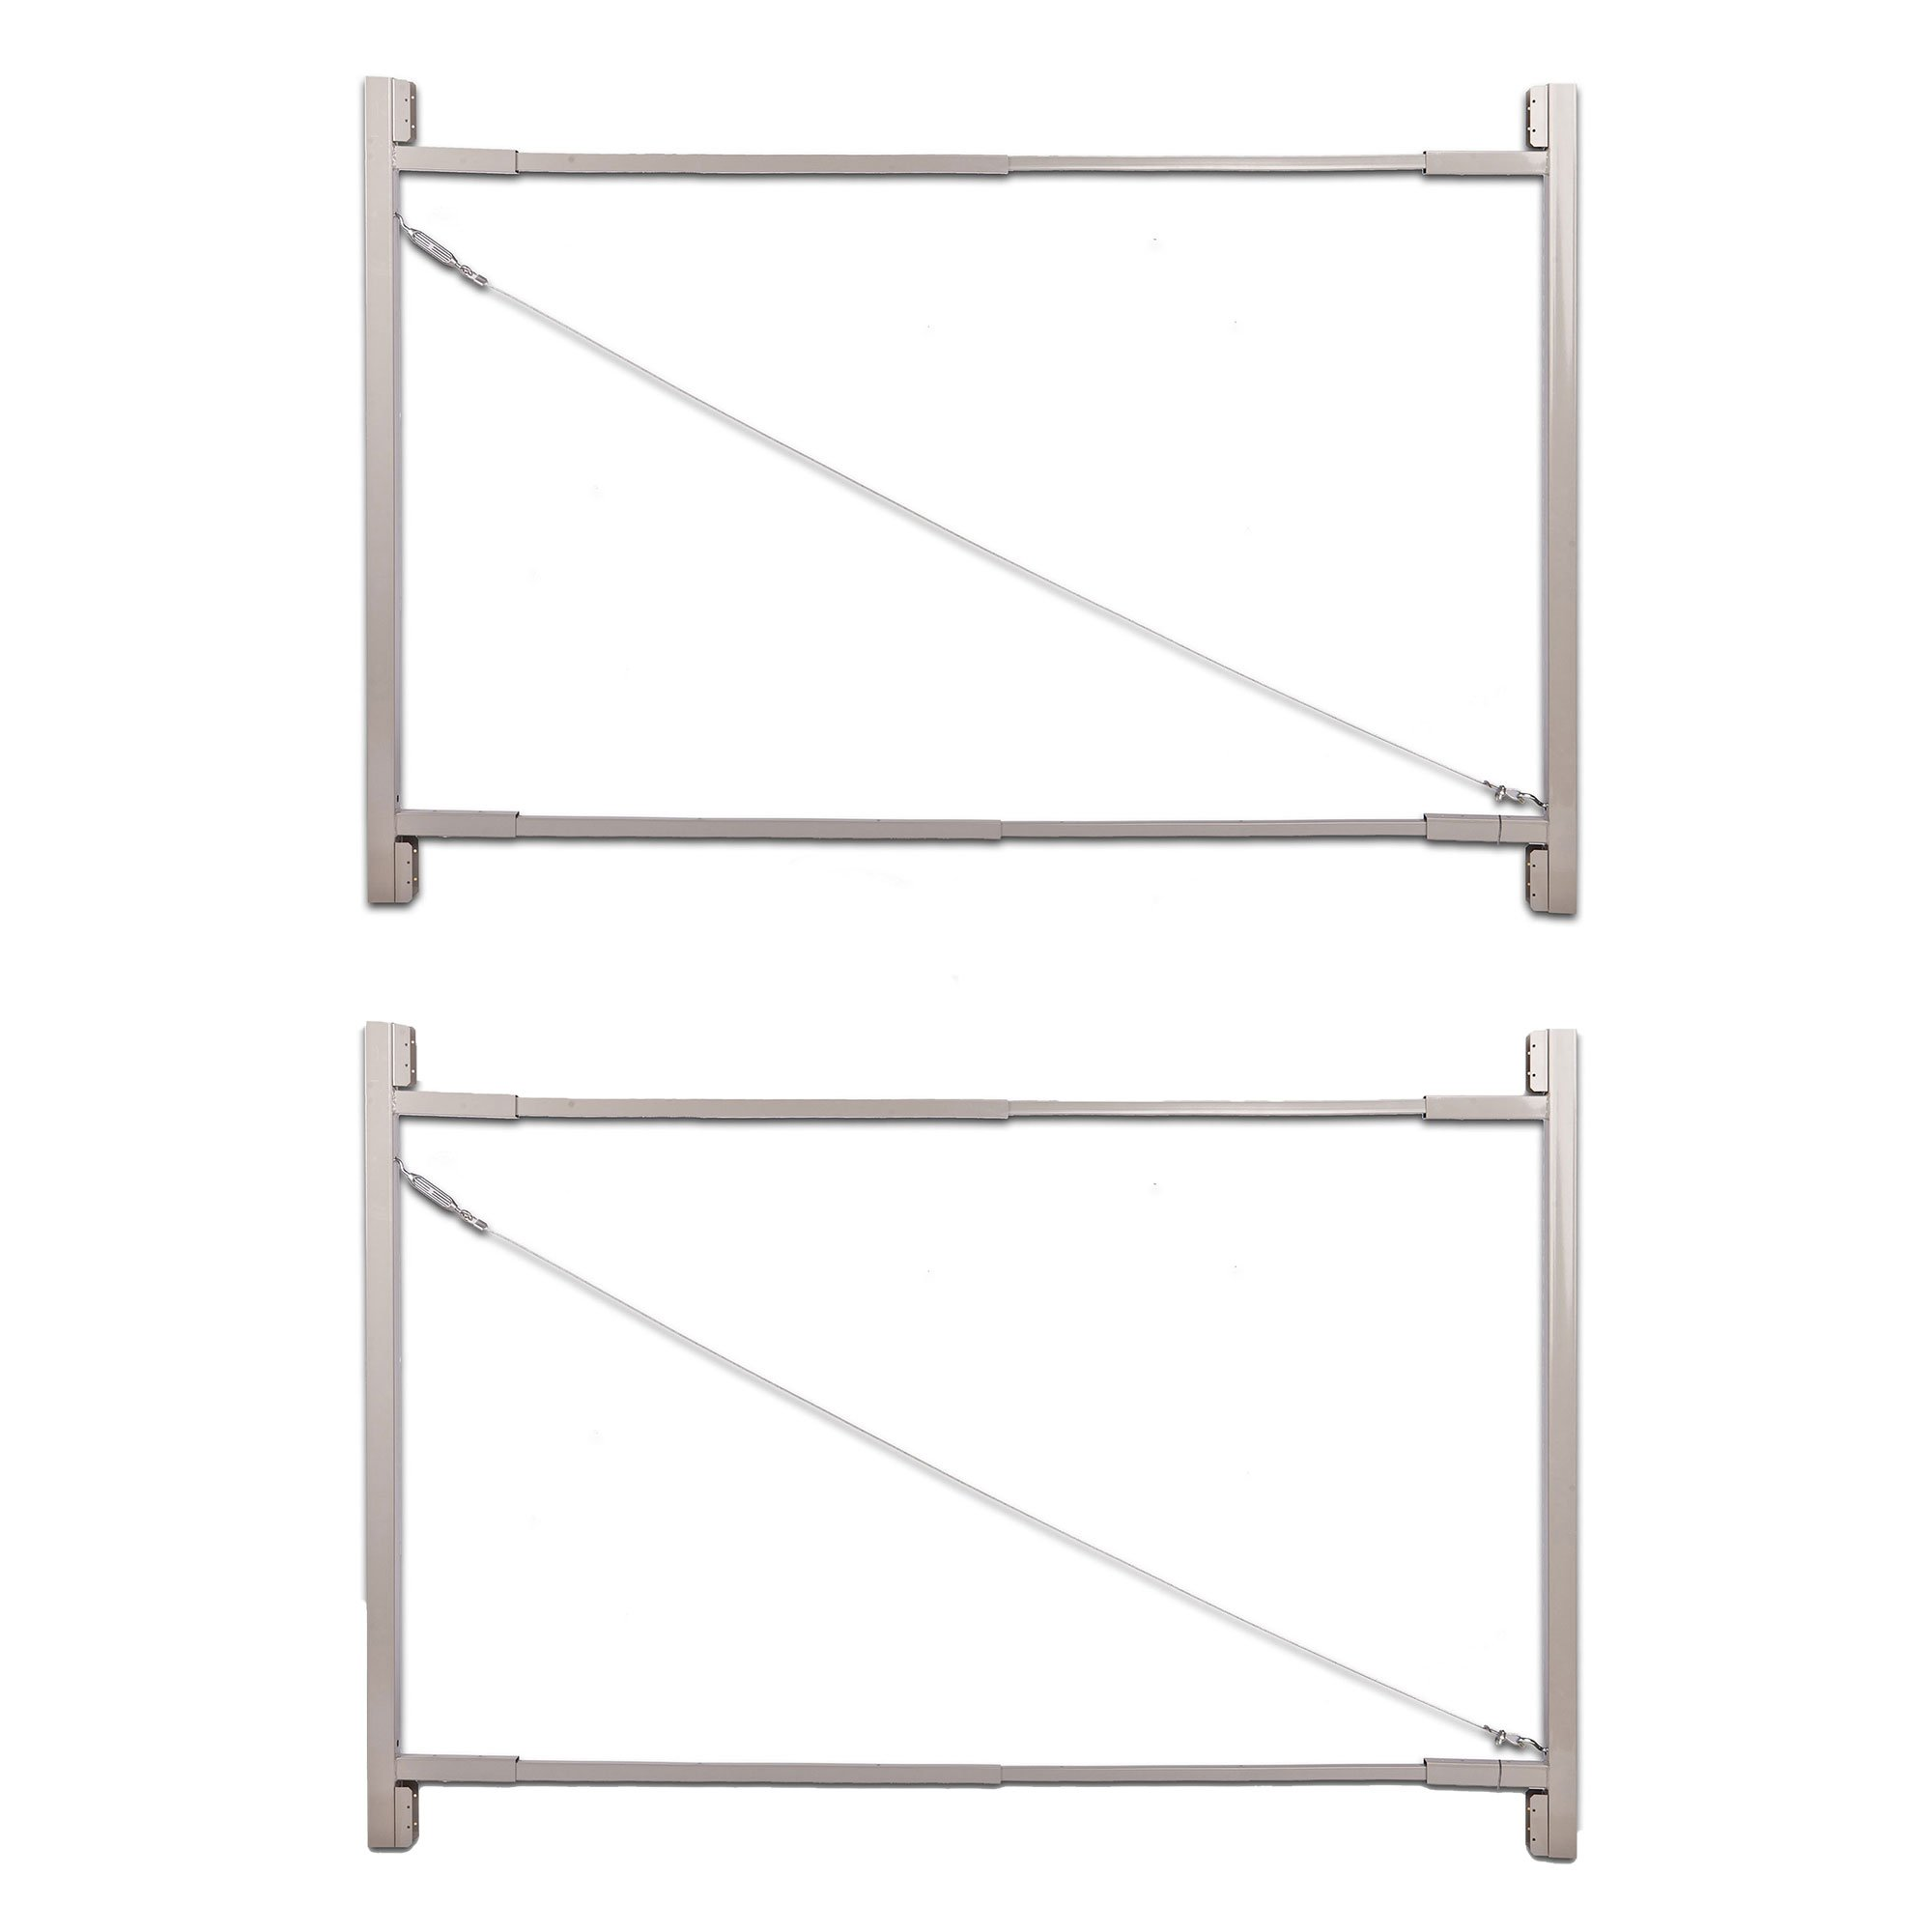 Adjust-A-Gate Gate Building Kit, 36''-72'' Wide Opening Up to 6' High (2 Pack)